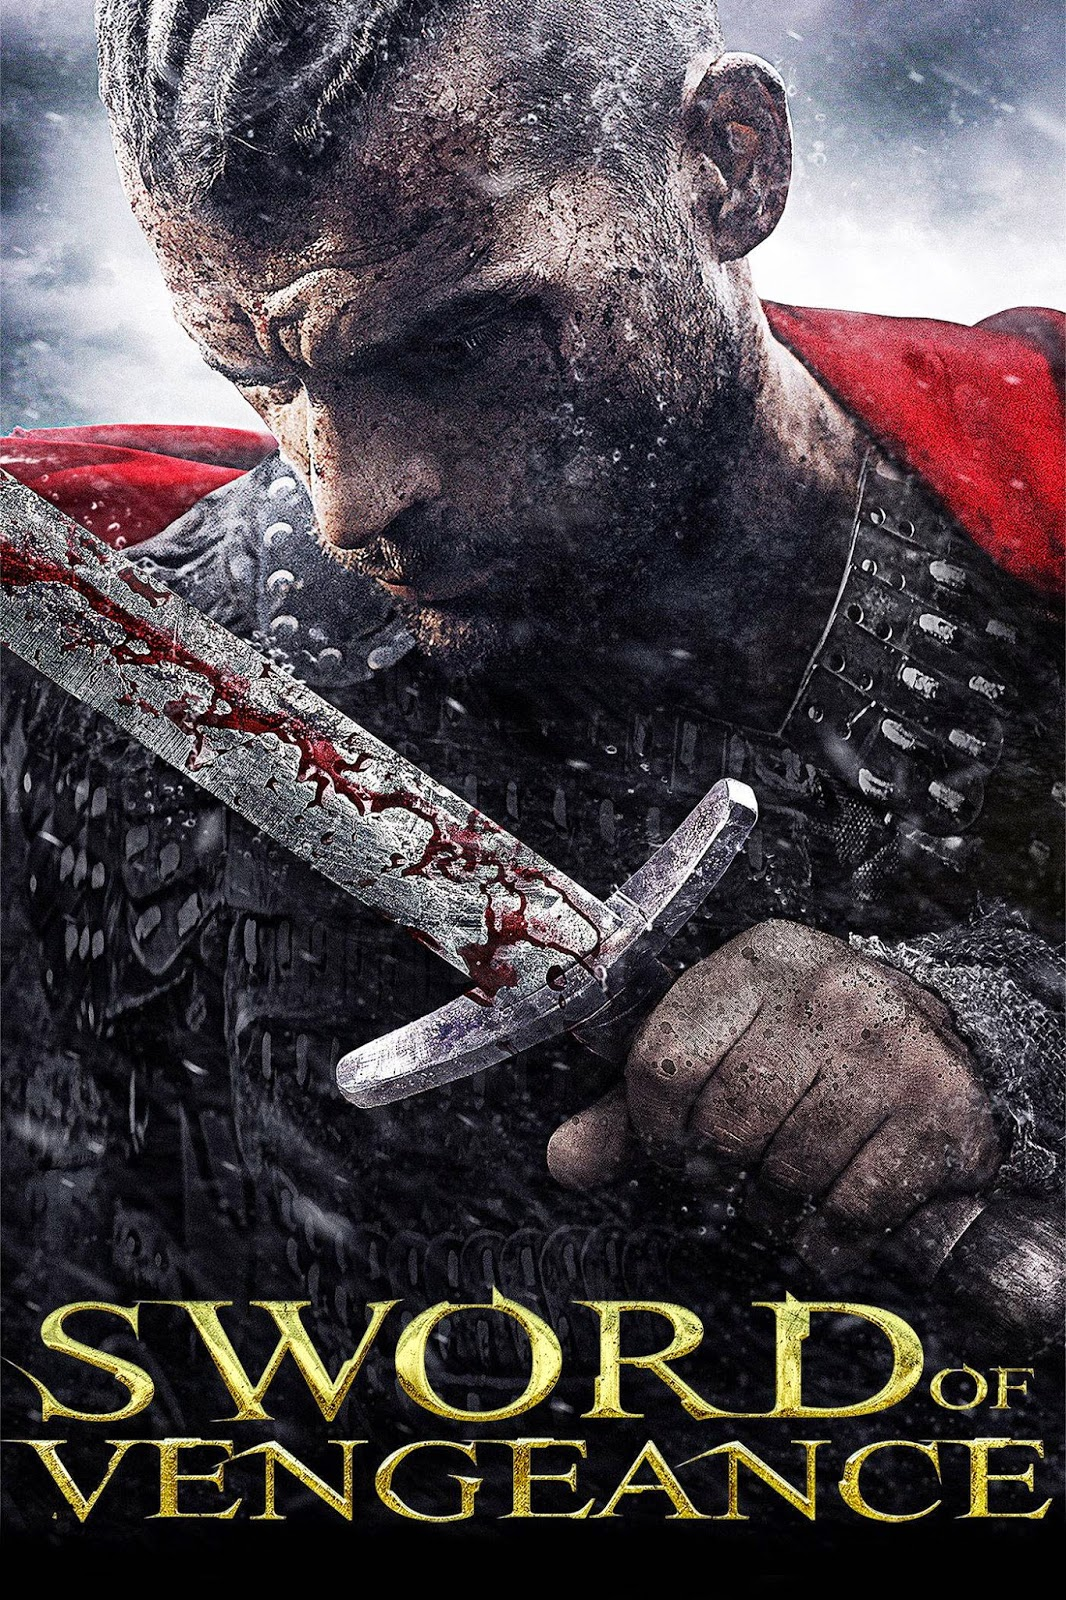 Sword of Vengeance 2014 - Full (HD)